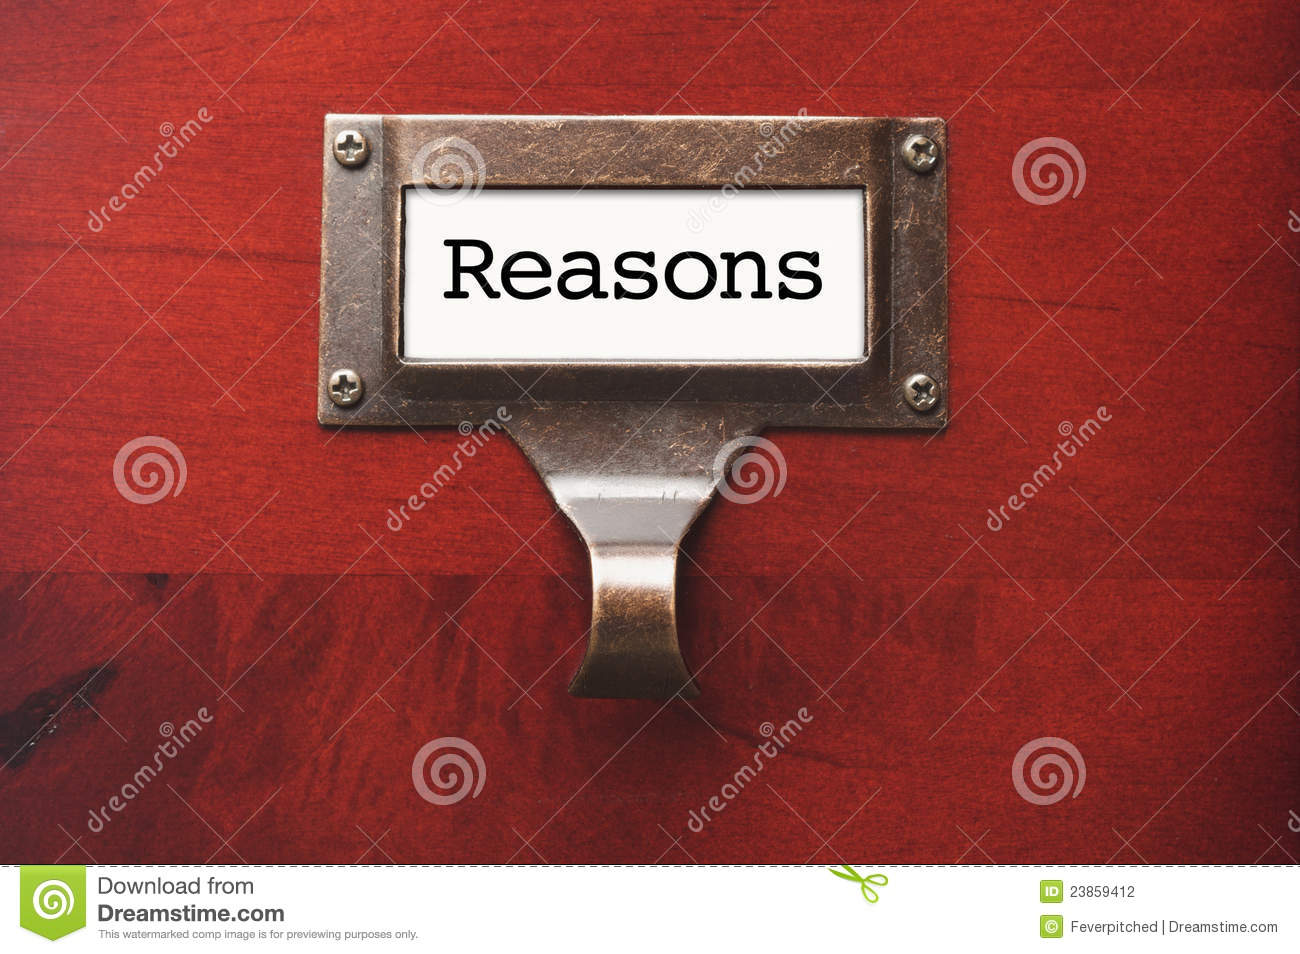 Wooden Office File Cabinet with Reasons Label